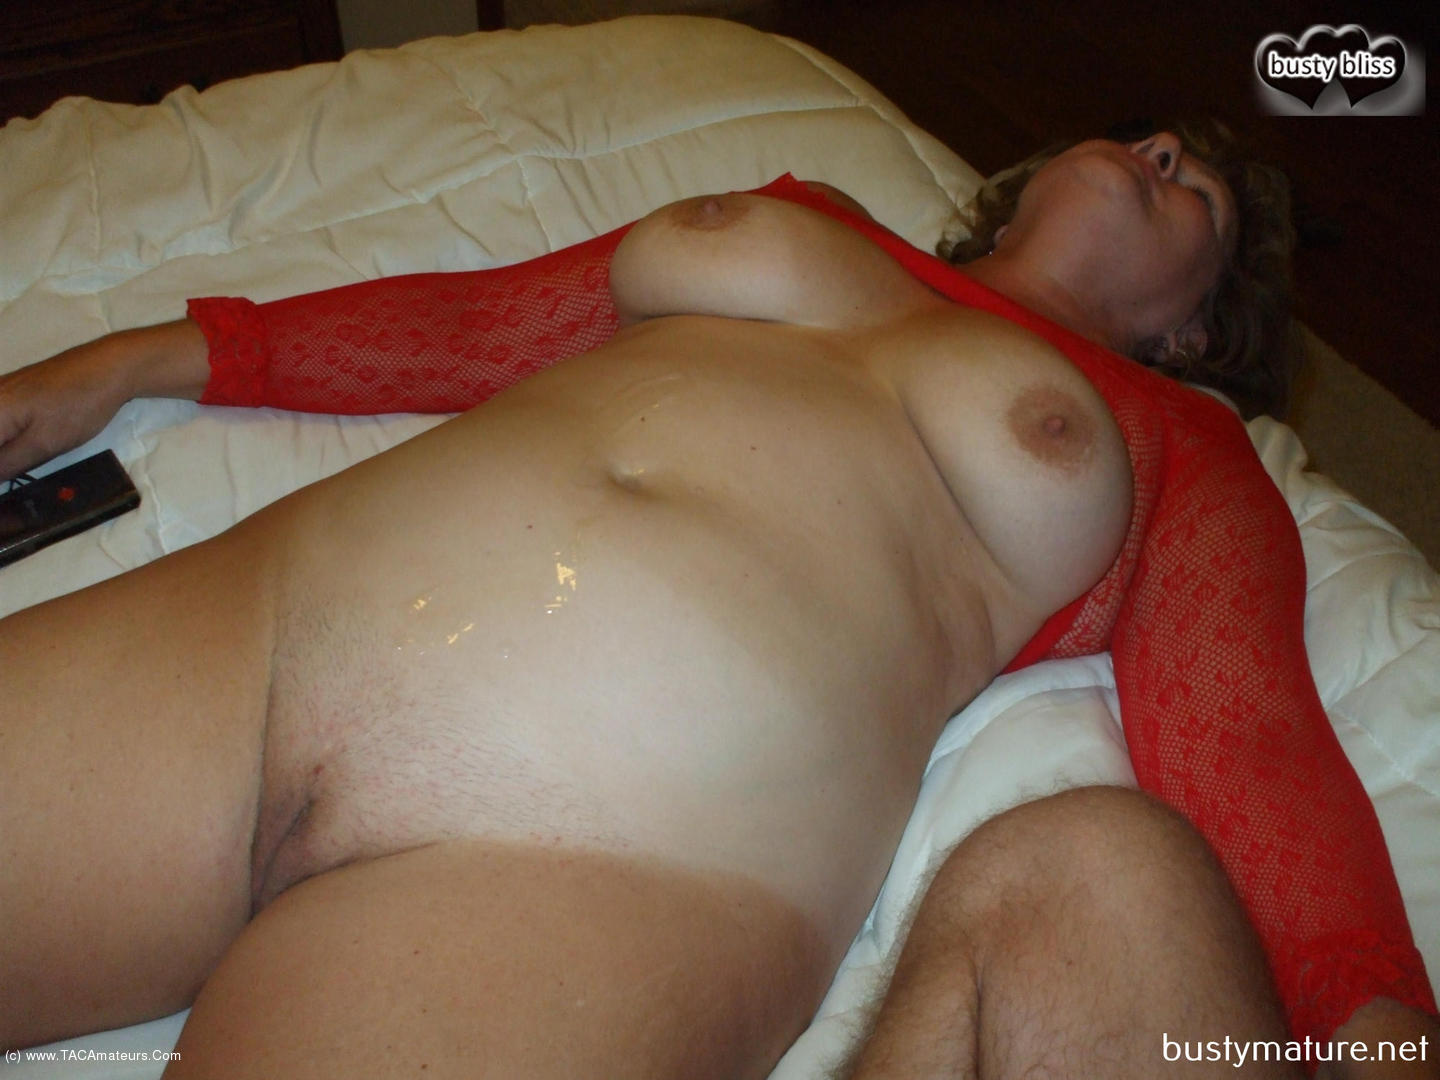 free busty sister porn